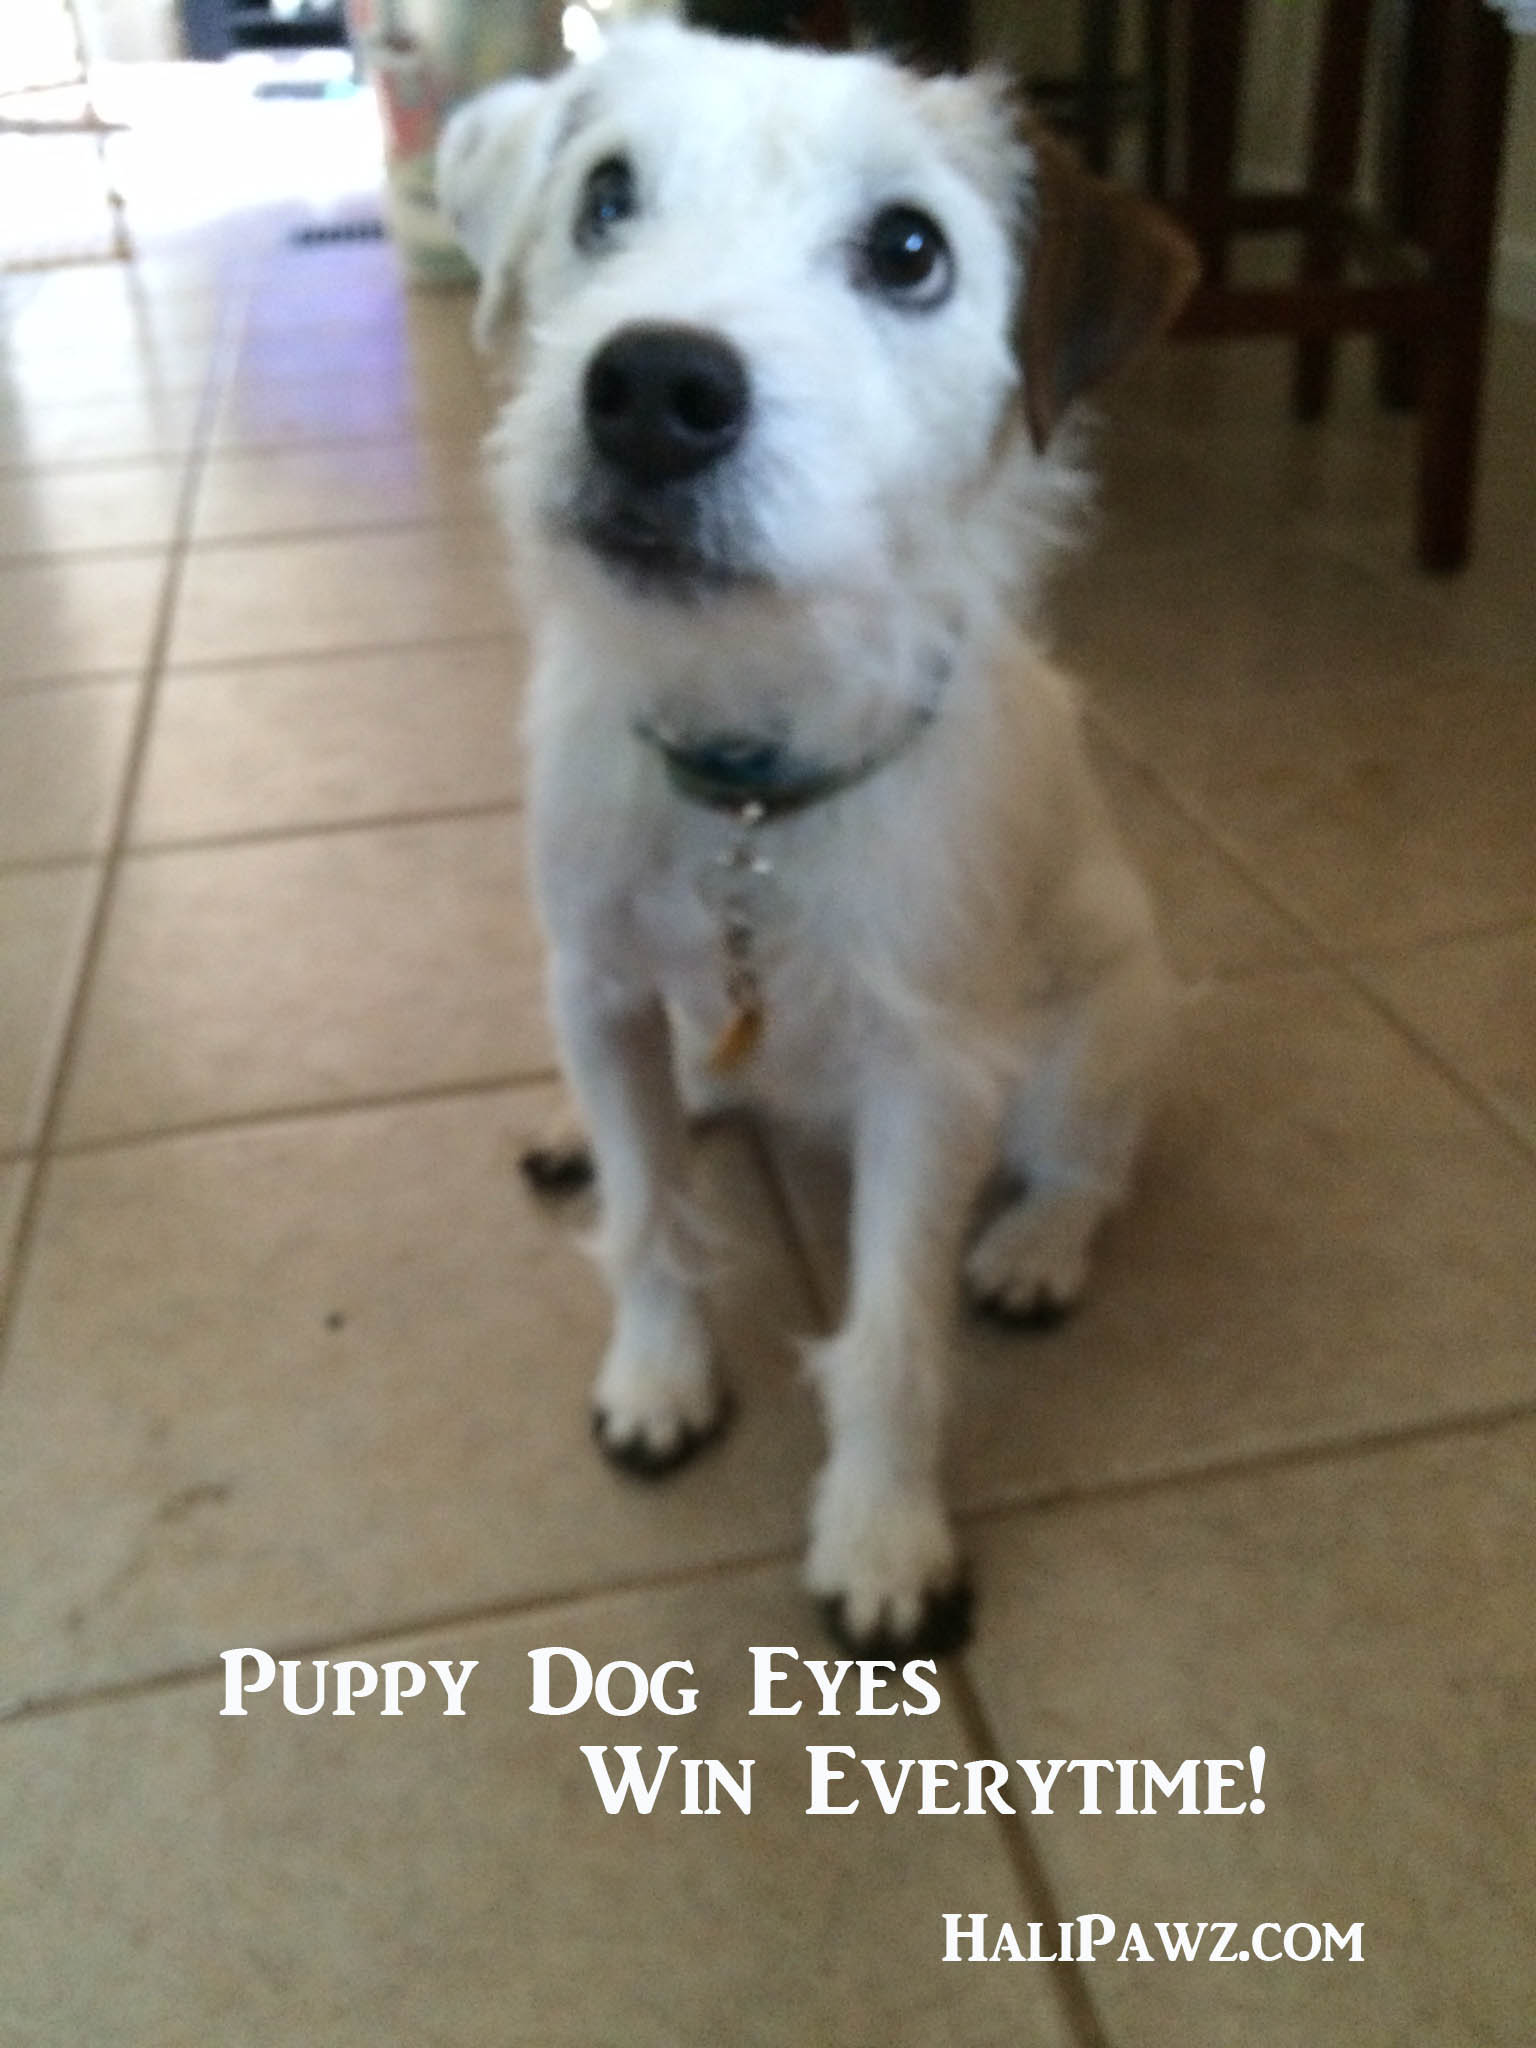 puppy dog eyes parsons russell terrier halipawz